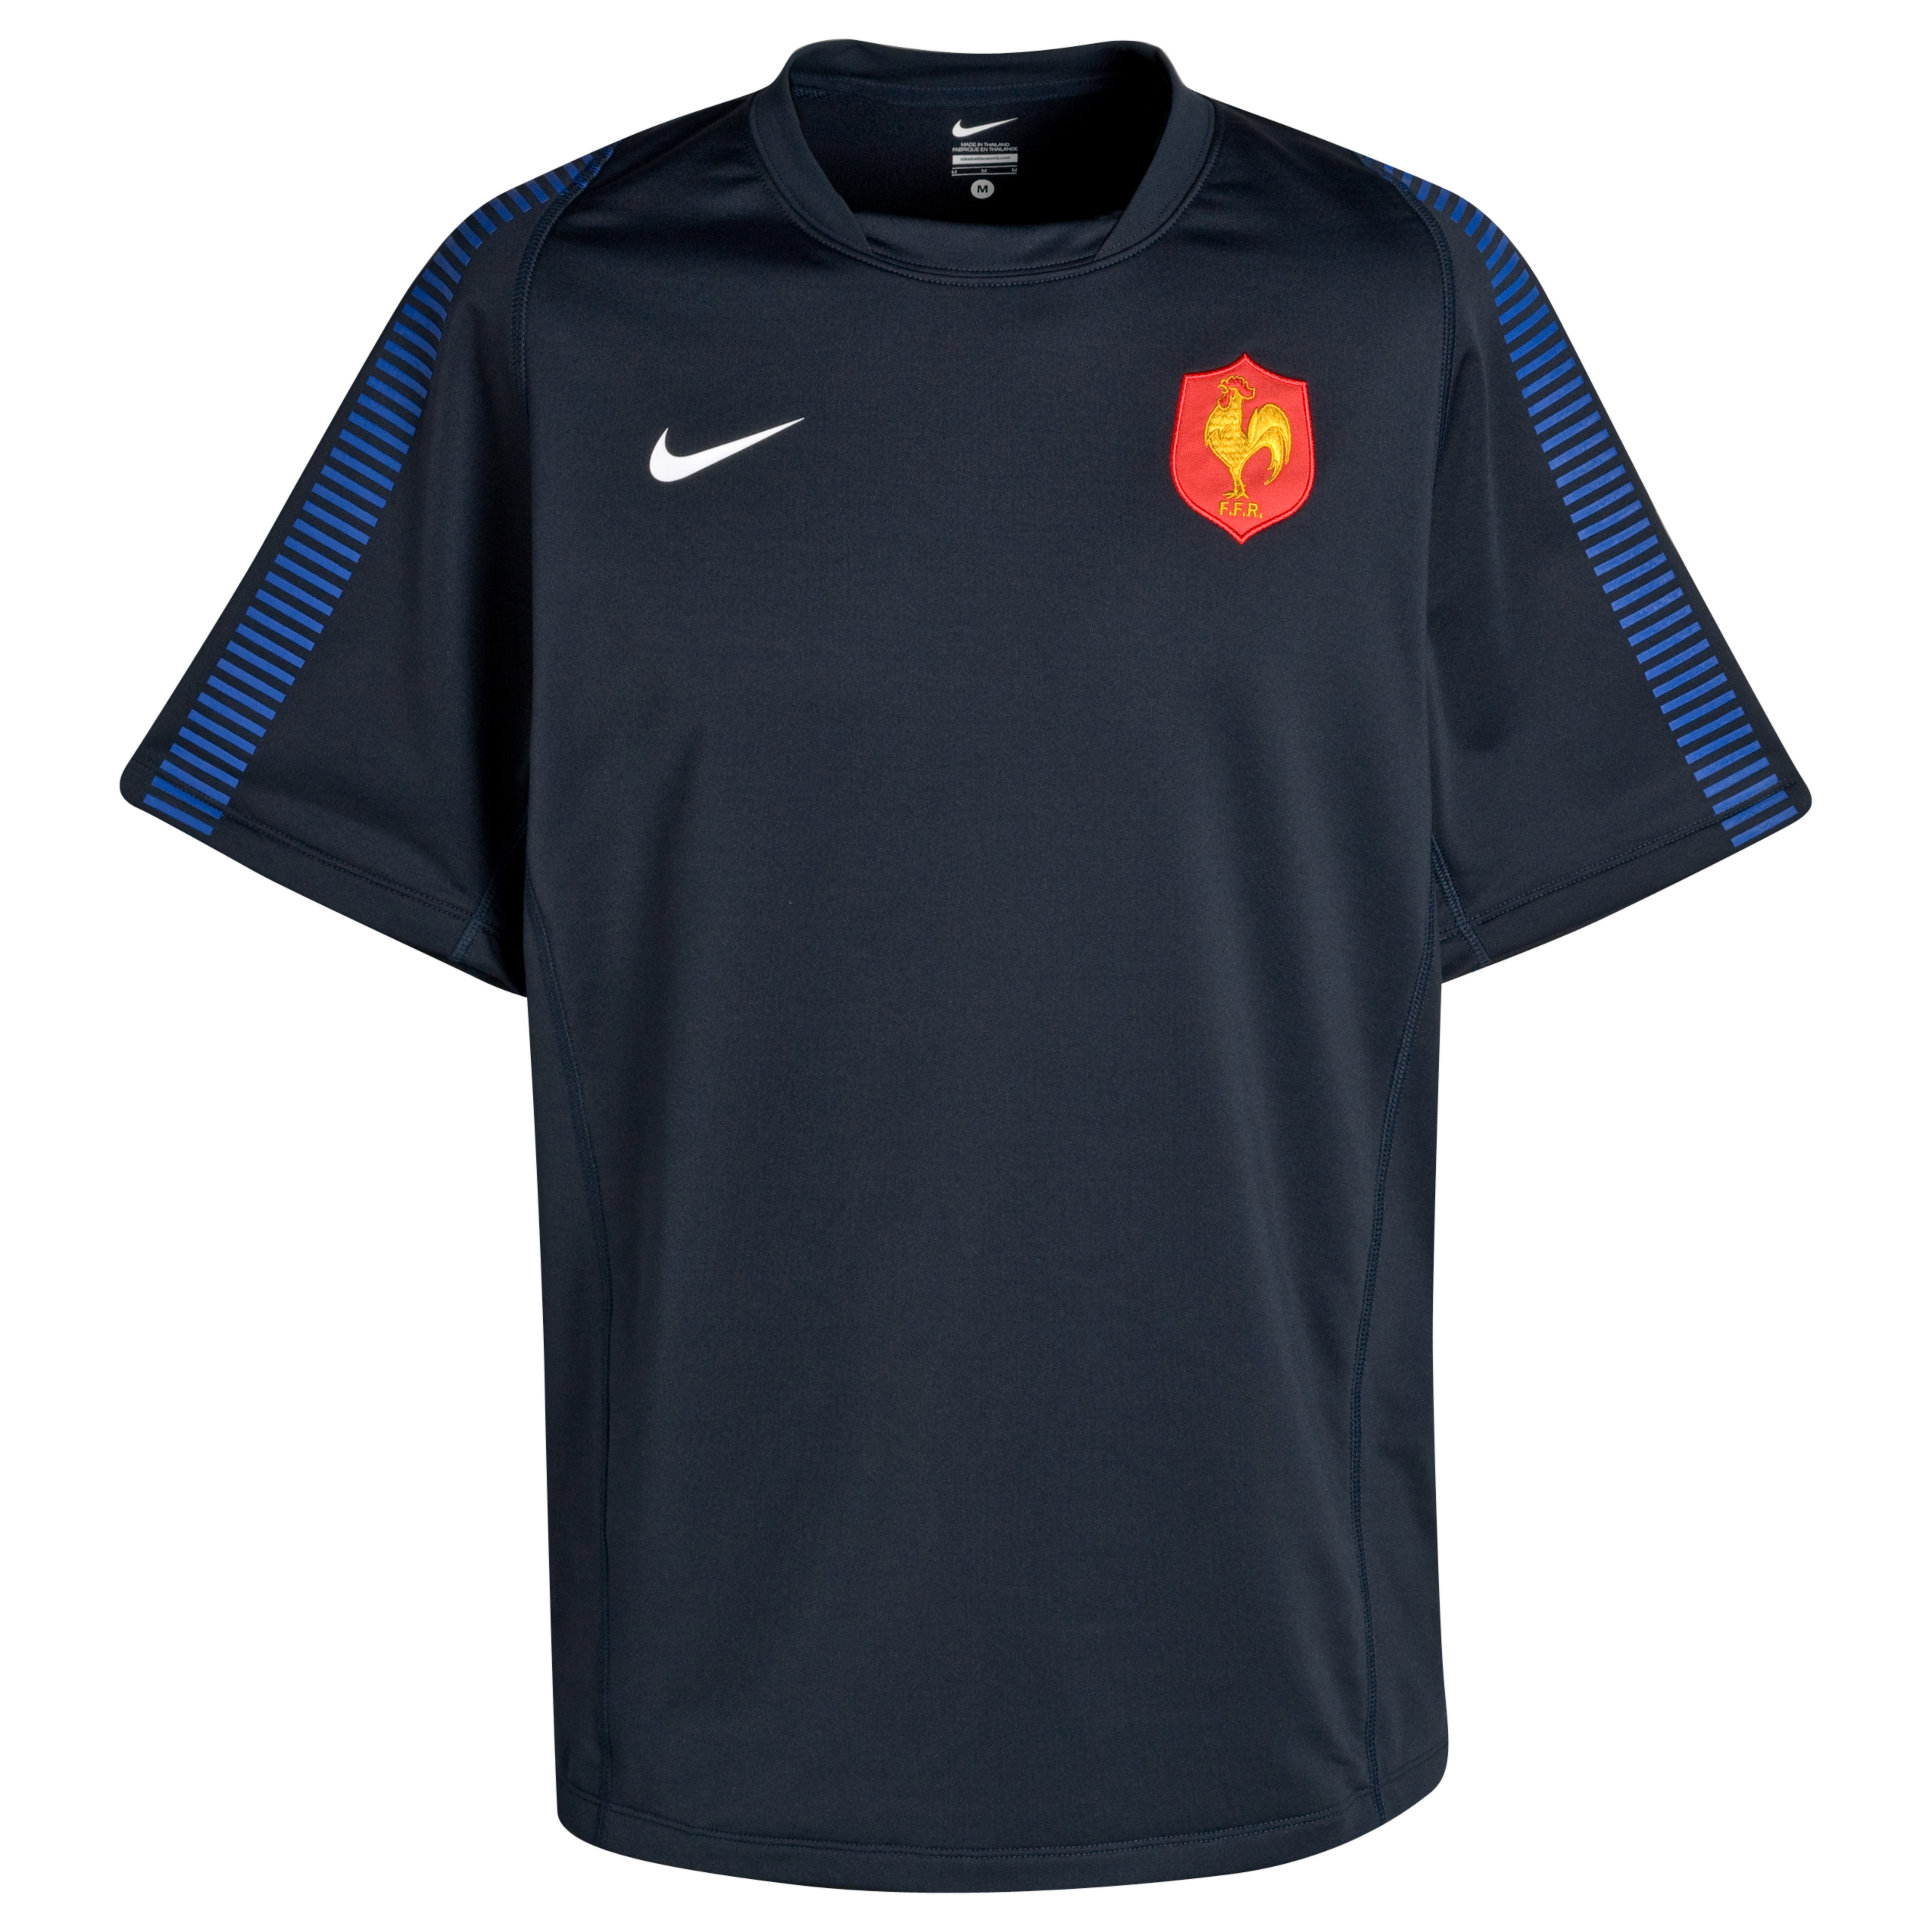 France Rugby Training Jersey - Old Royal/Dark Obsidian